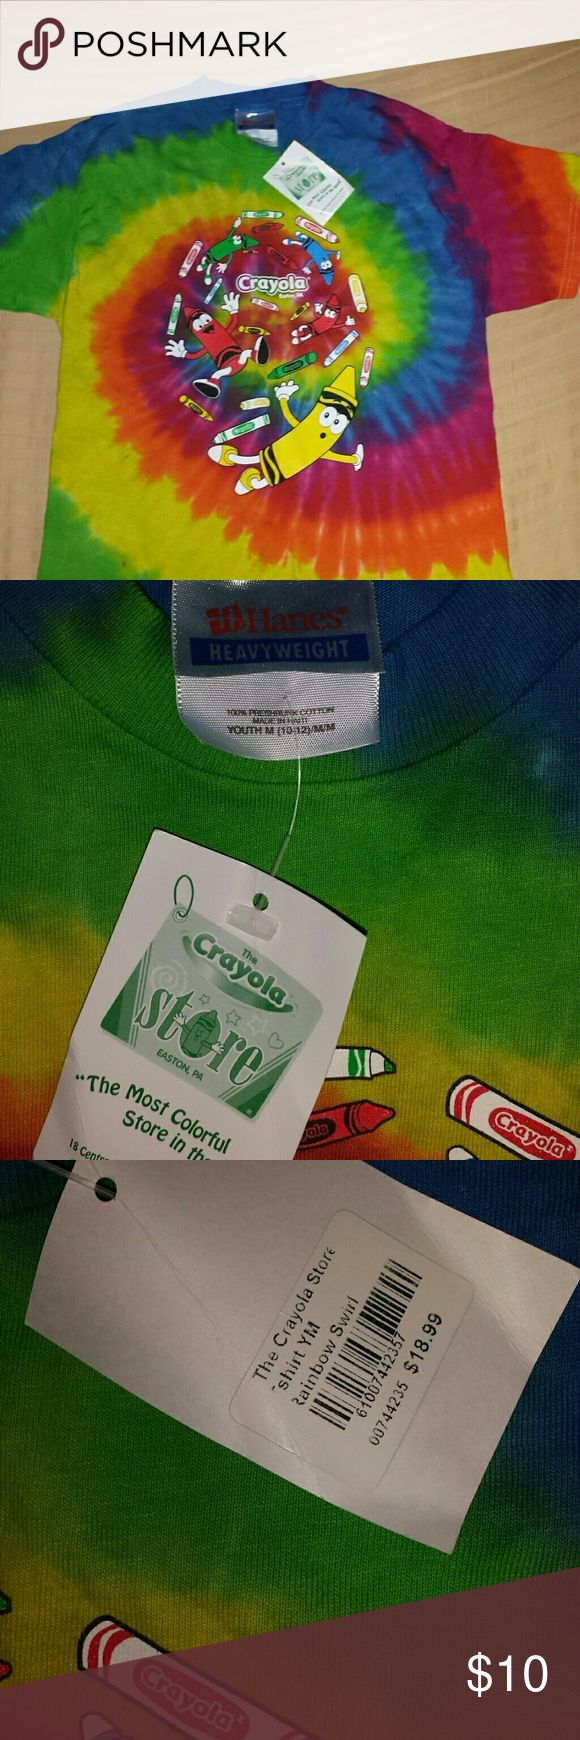 Crayola store tie dye t shirt kids size m BNWT Brand new tire dye, hanes heavyweight t shirt  from crayola factory in Easton,  PA. Shirts & Tops Tees - Short Sleeve